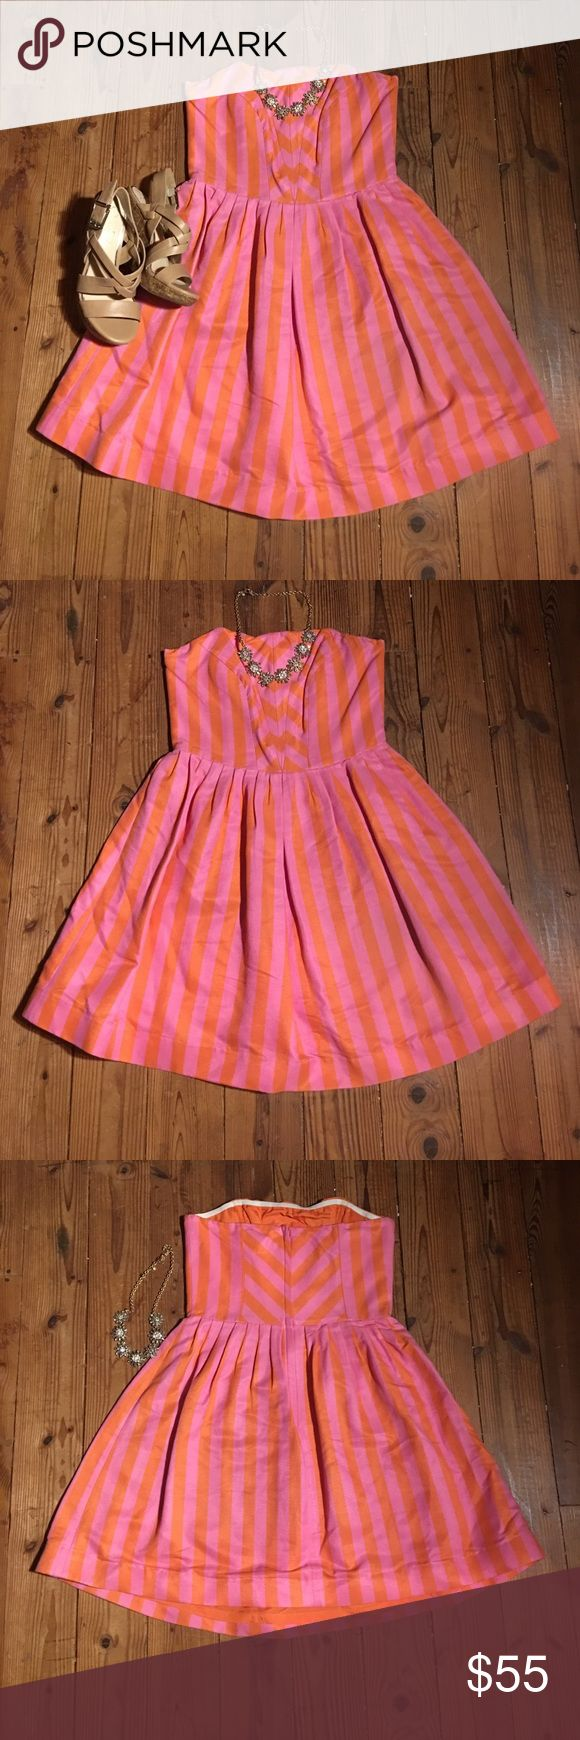 Lilly Pulitzer party dress Stay classy with your new party dress. Pink and orange stripped Lilly Pulitzer dress has only been worn once. Perfect for any occasion from Carolina cup to cocktail party. You can never go wrong with Lilly. Lilly Pulitzer Dresses Mini